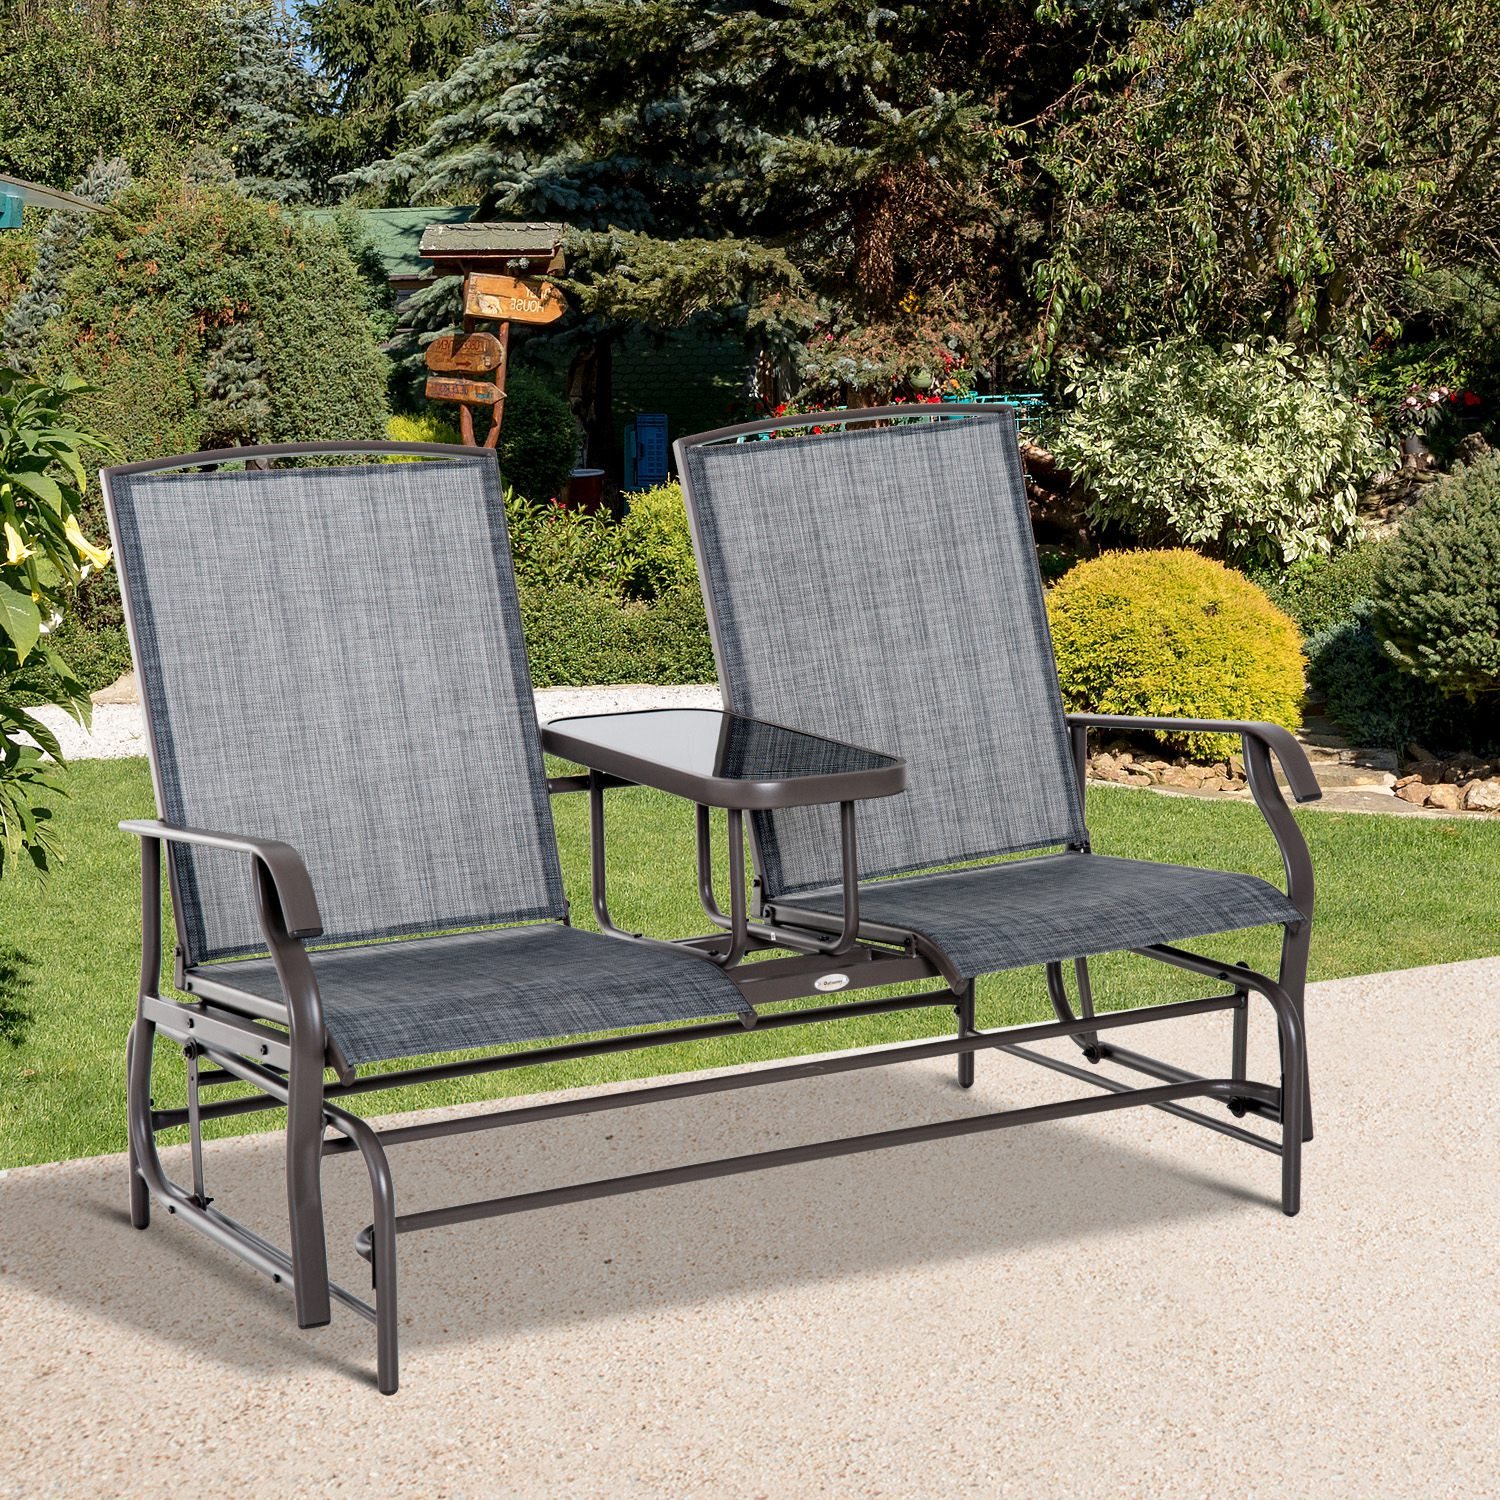 Details about outsunny 2 seater patio glider rocking chair metal swing bench furniture table